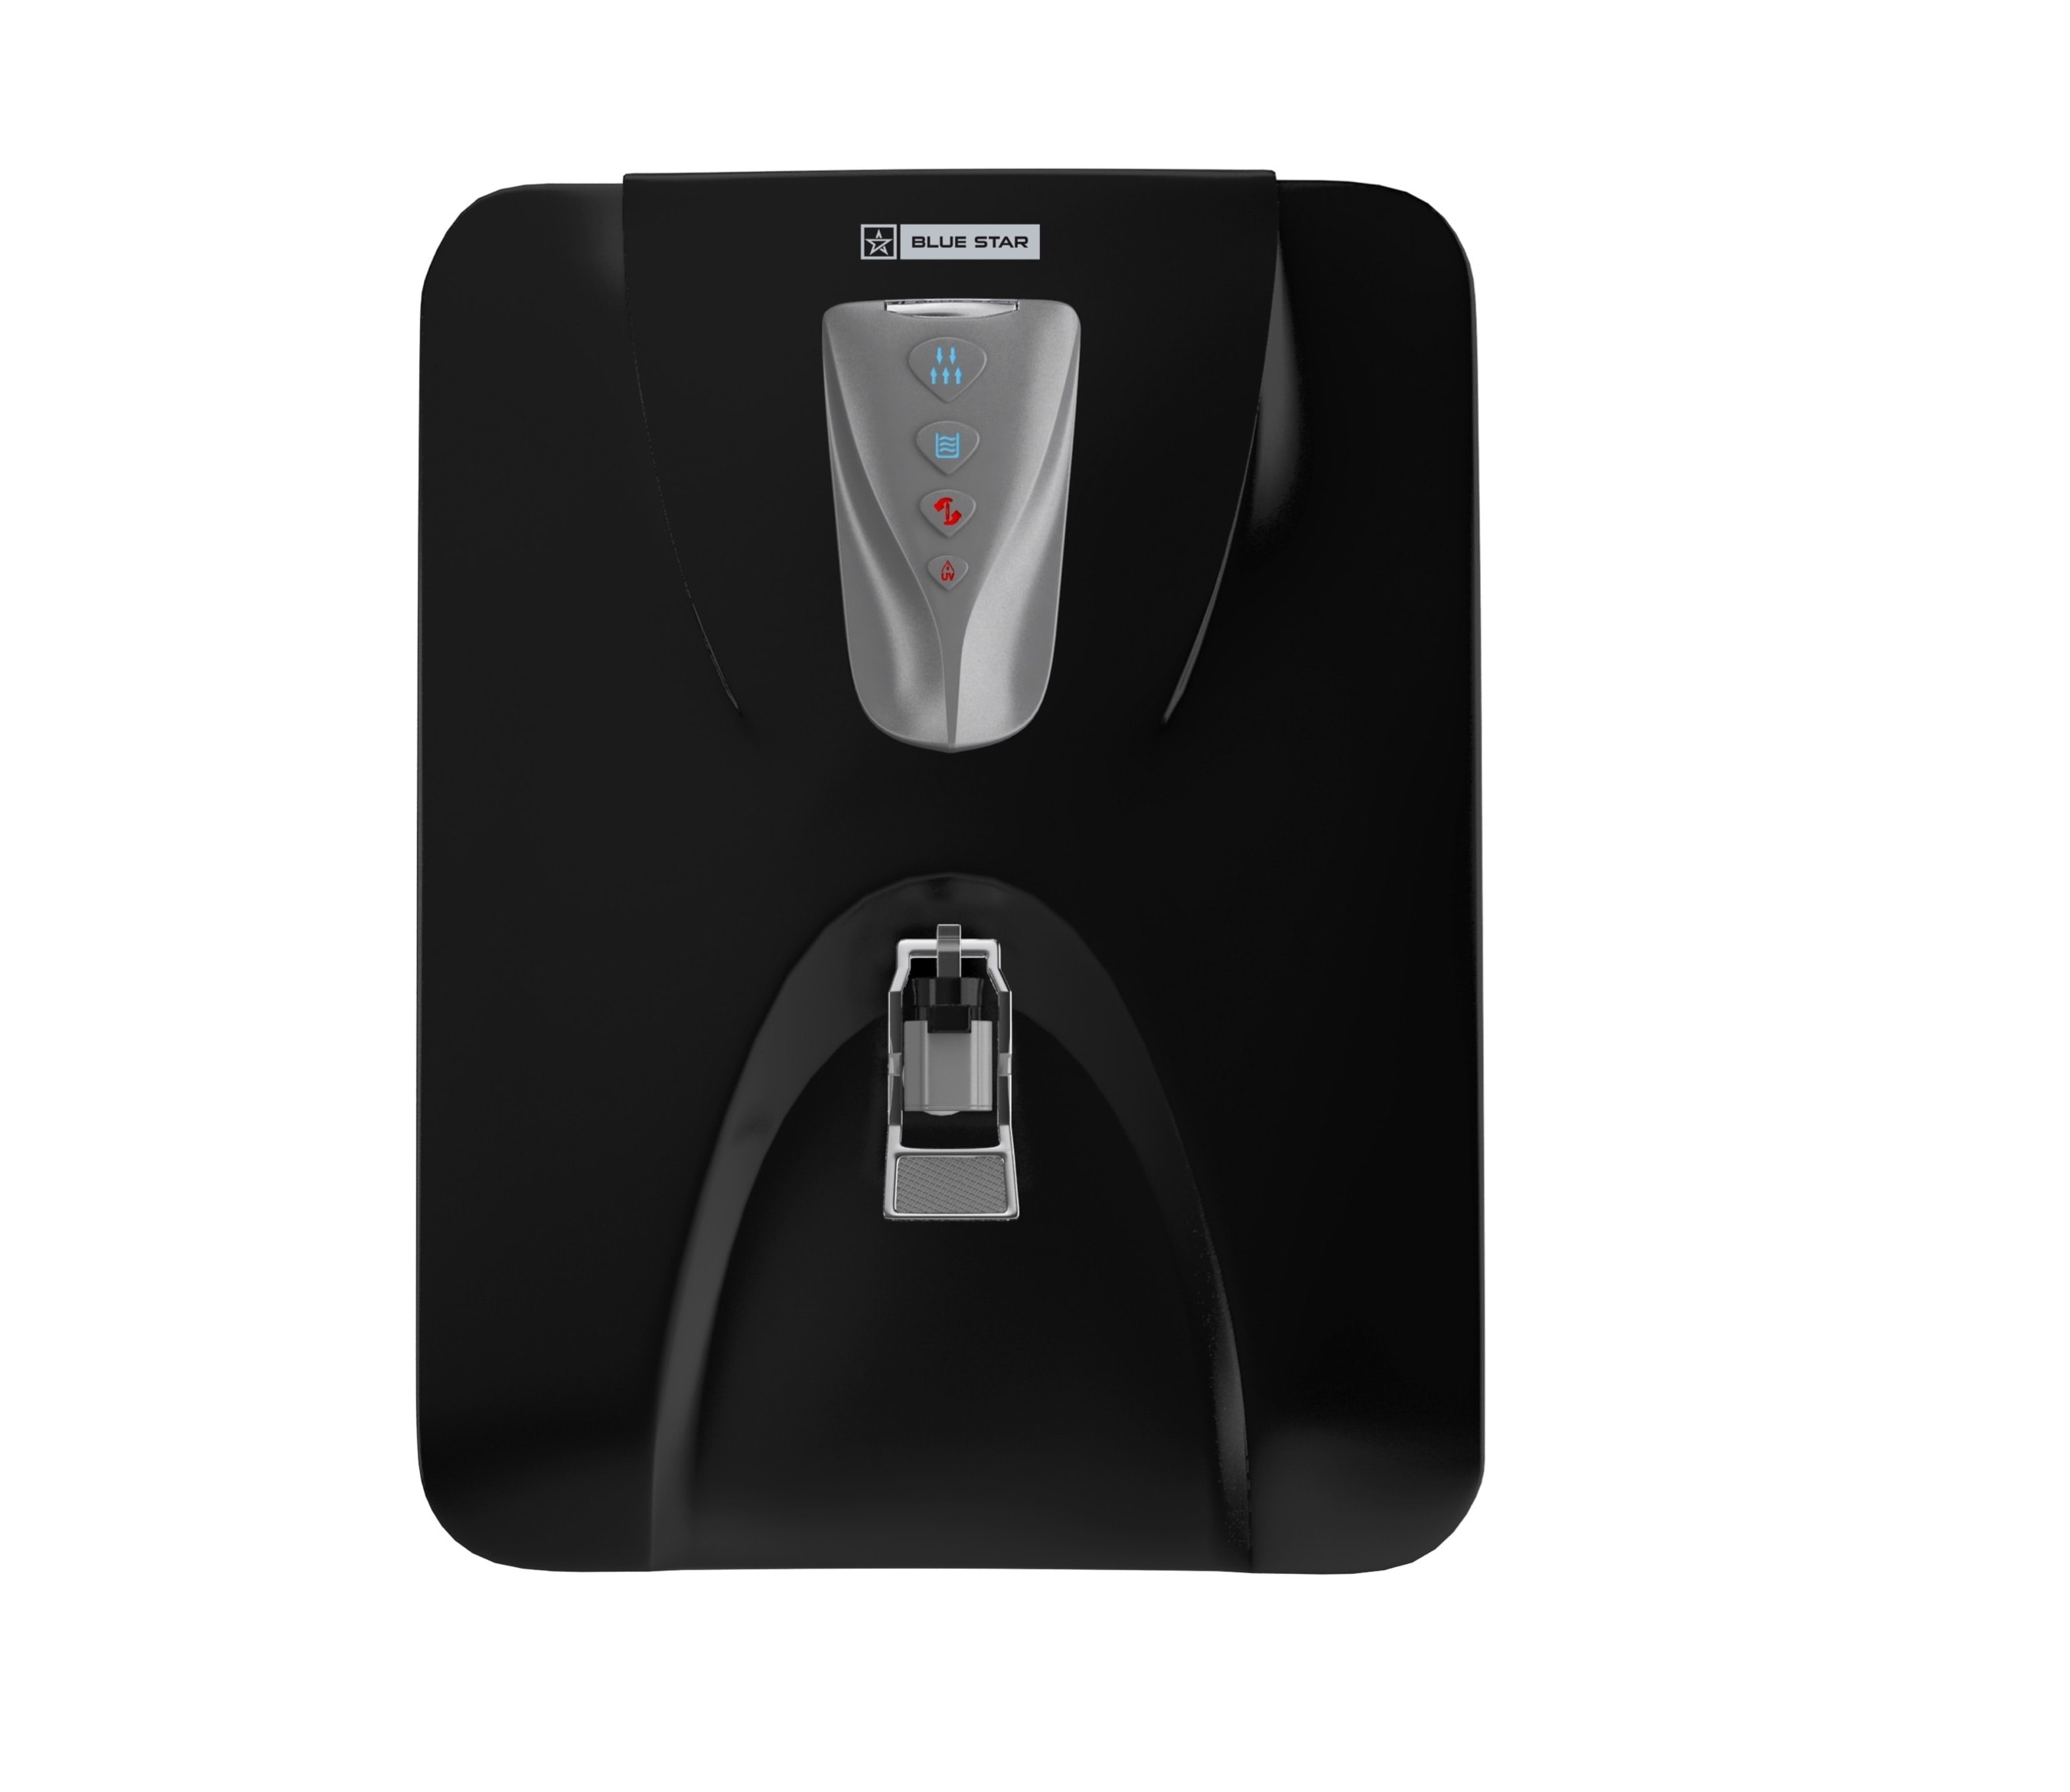 9 2 Liter RO + UV + UF IMPERIA Blue Star Water Purifier with